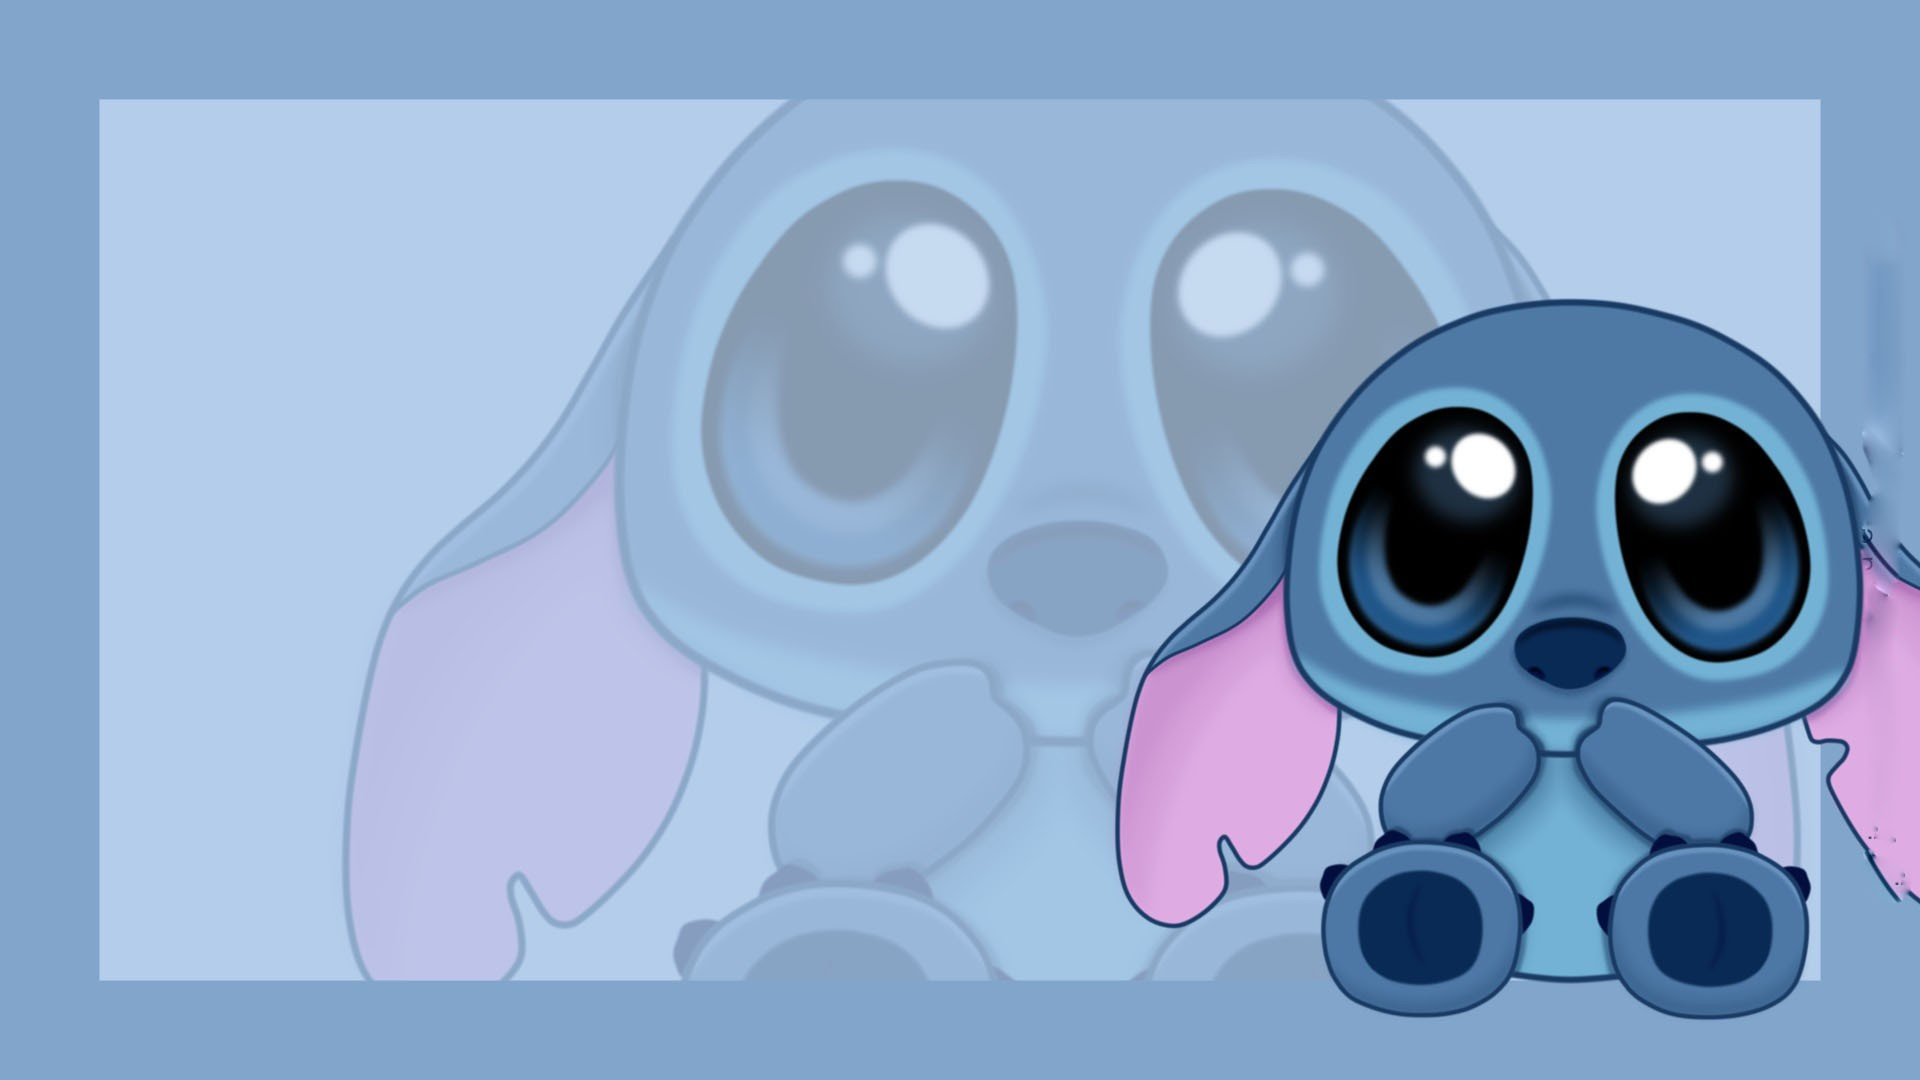 Stitch Wallpaper For Windows Stitch Hd 46887 Hd Wallpaper Backgrounds Download